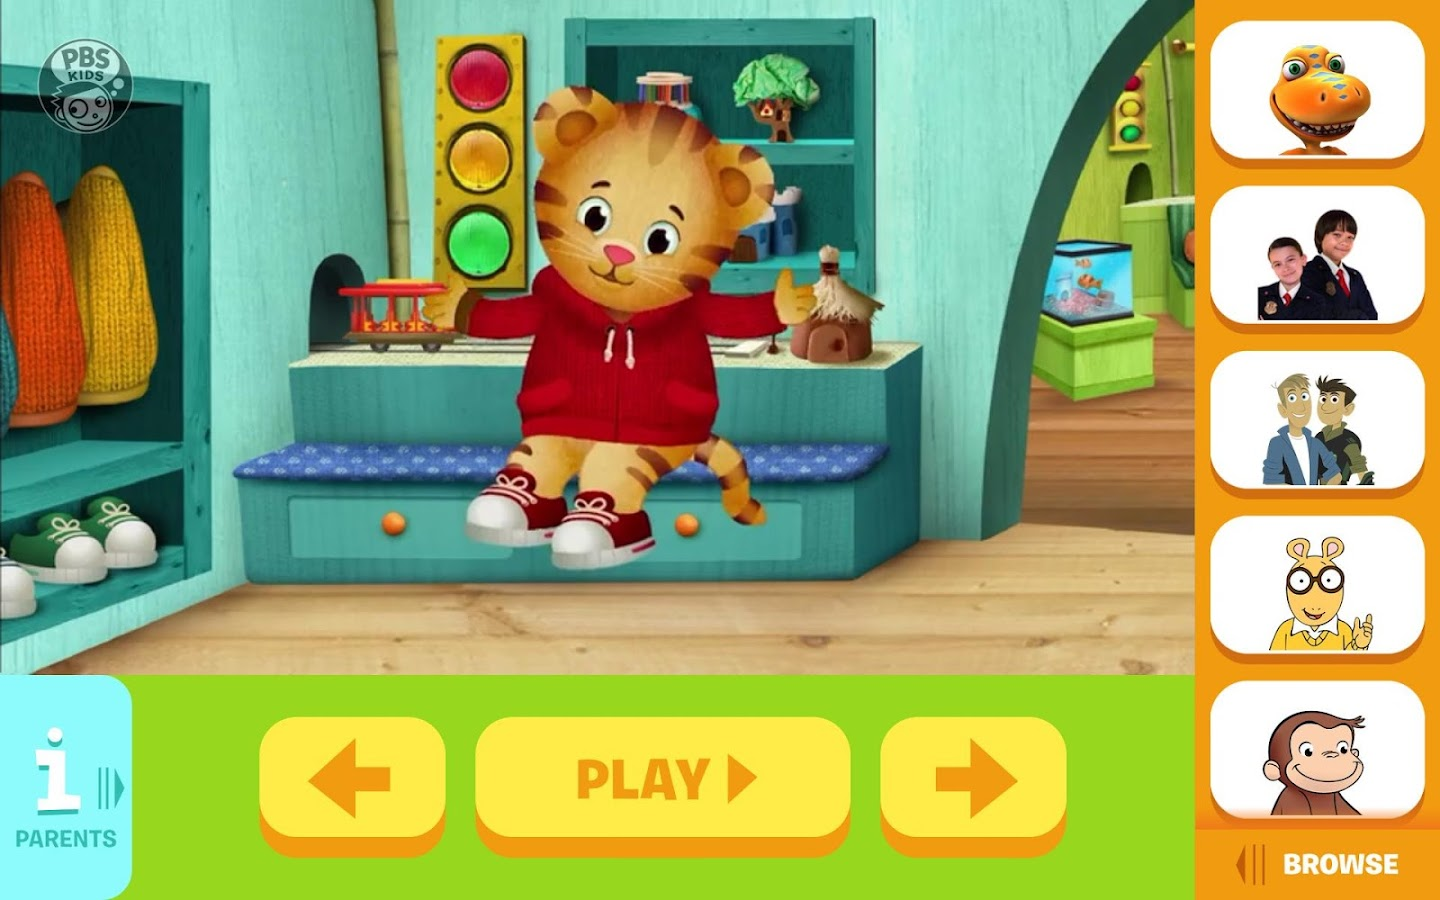 pbs kids video screenshot